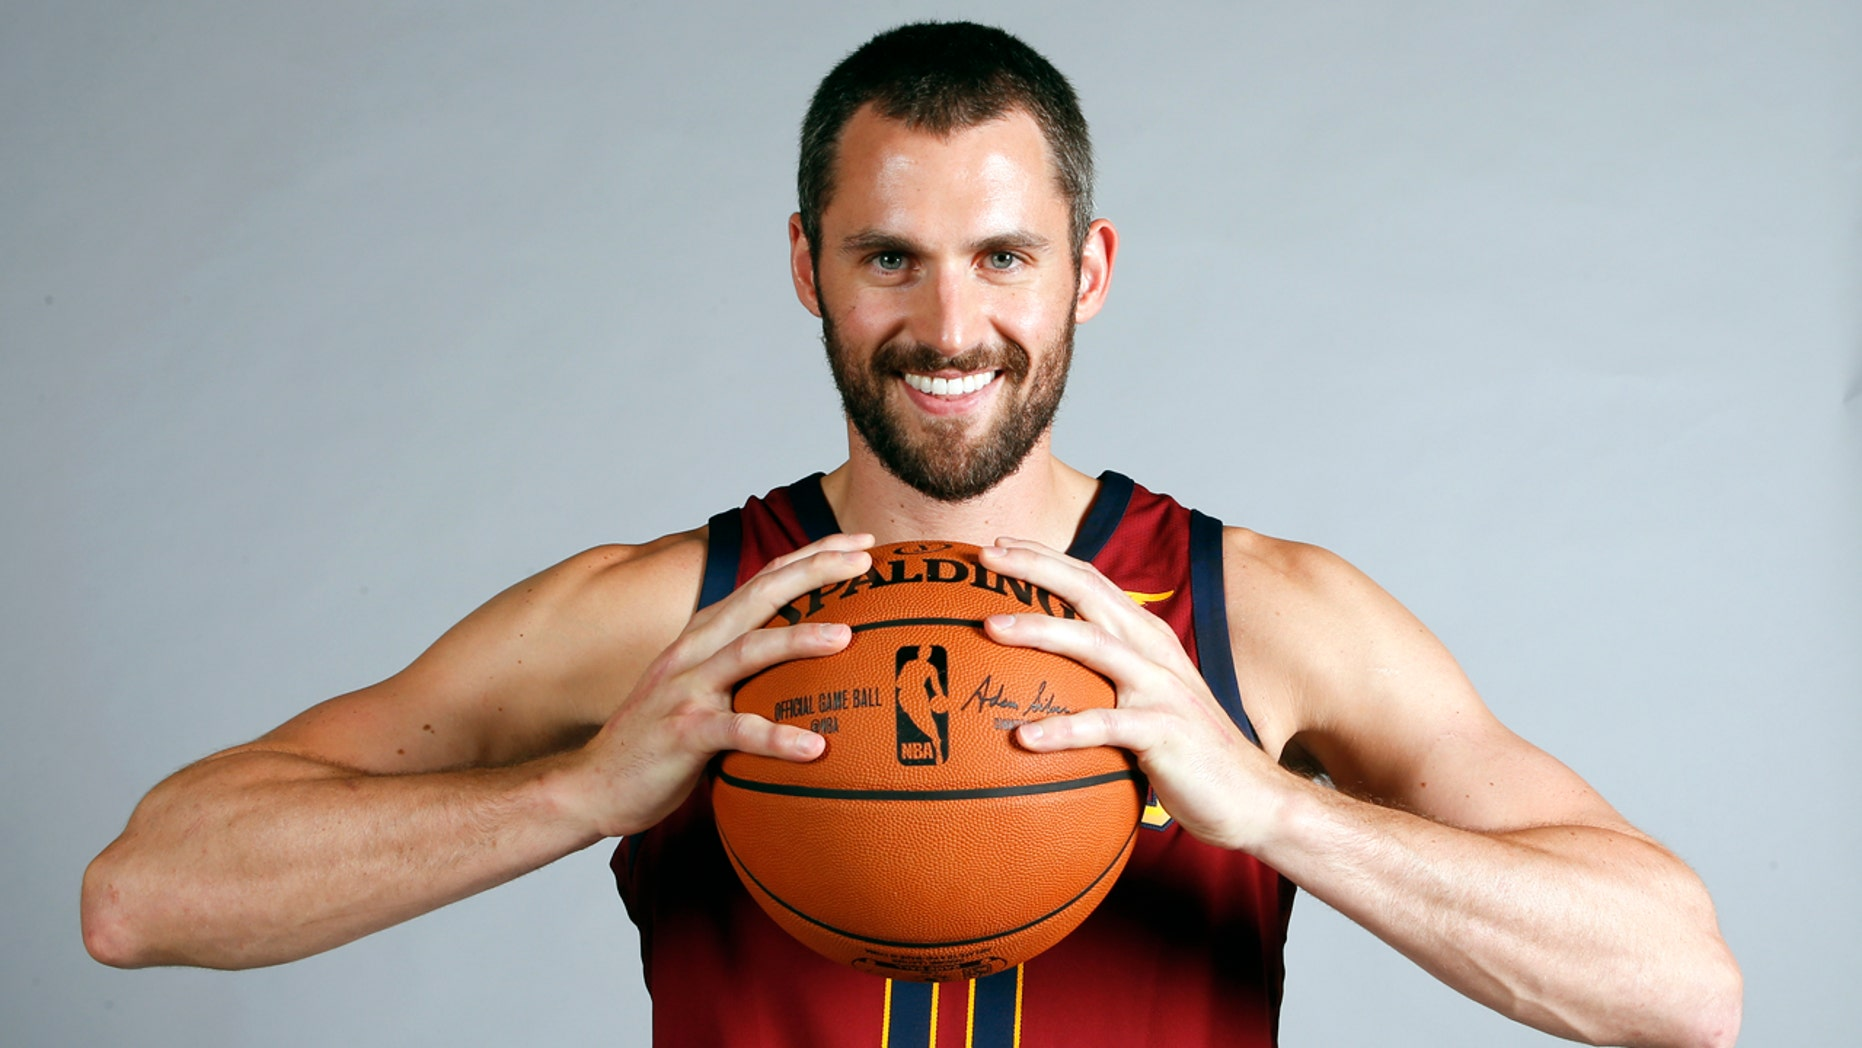 Love, 29, was traded to Cleveland from Minnesota in 2014.